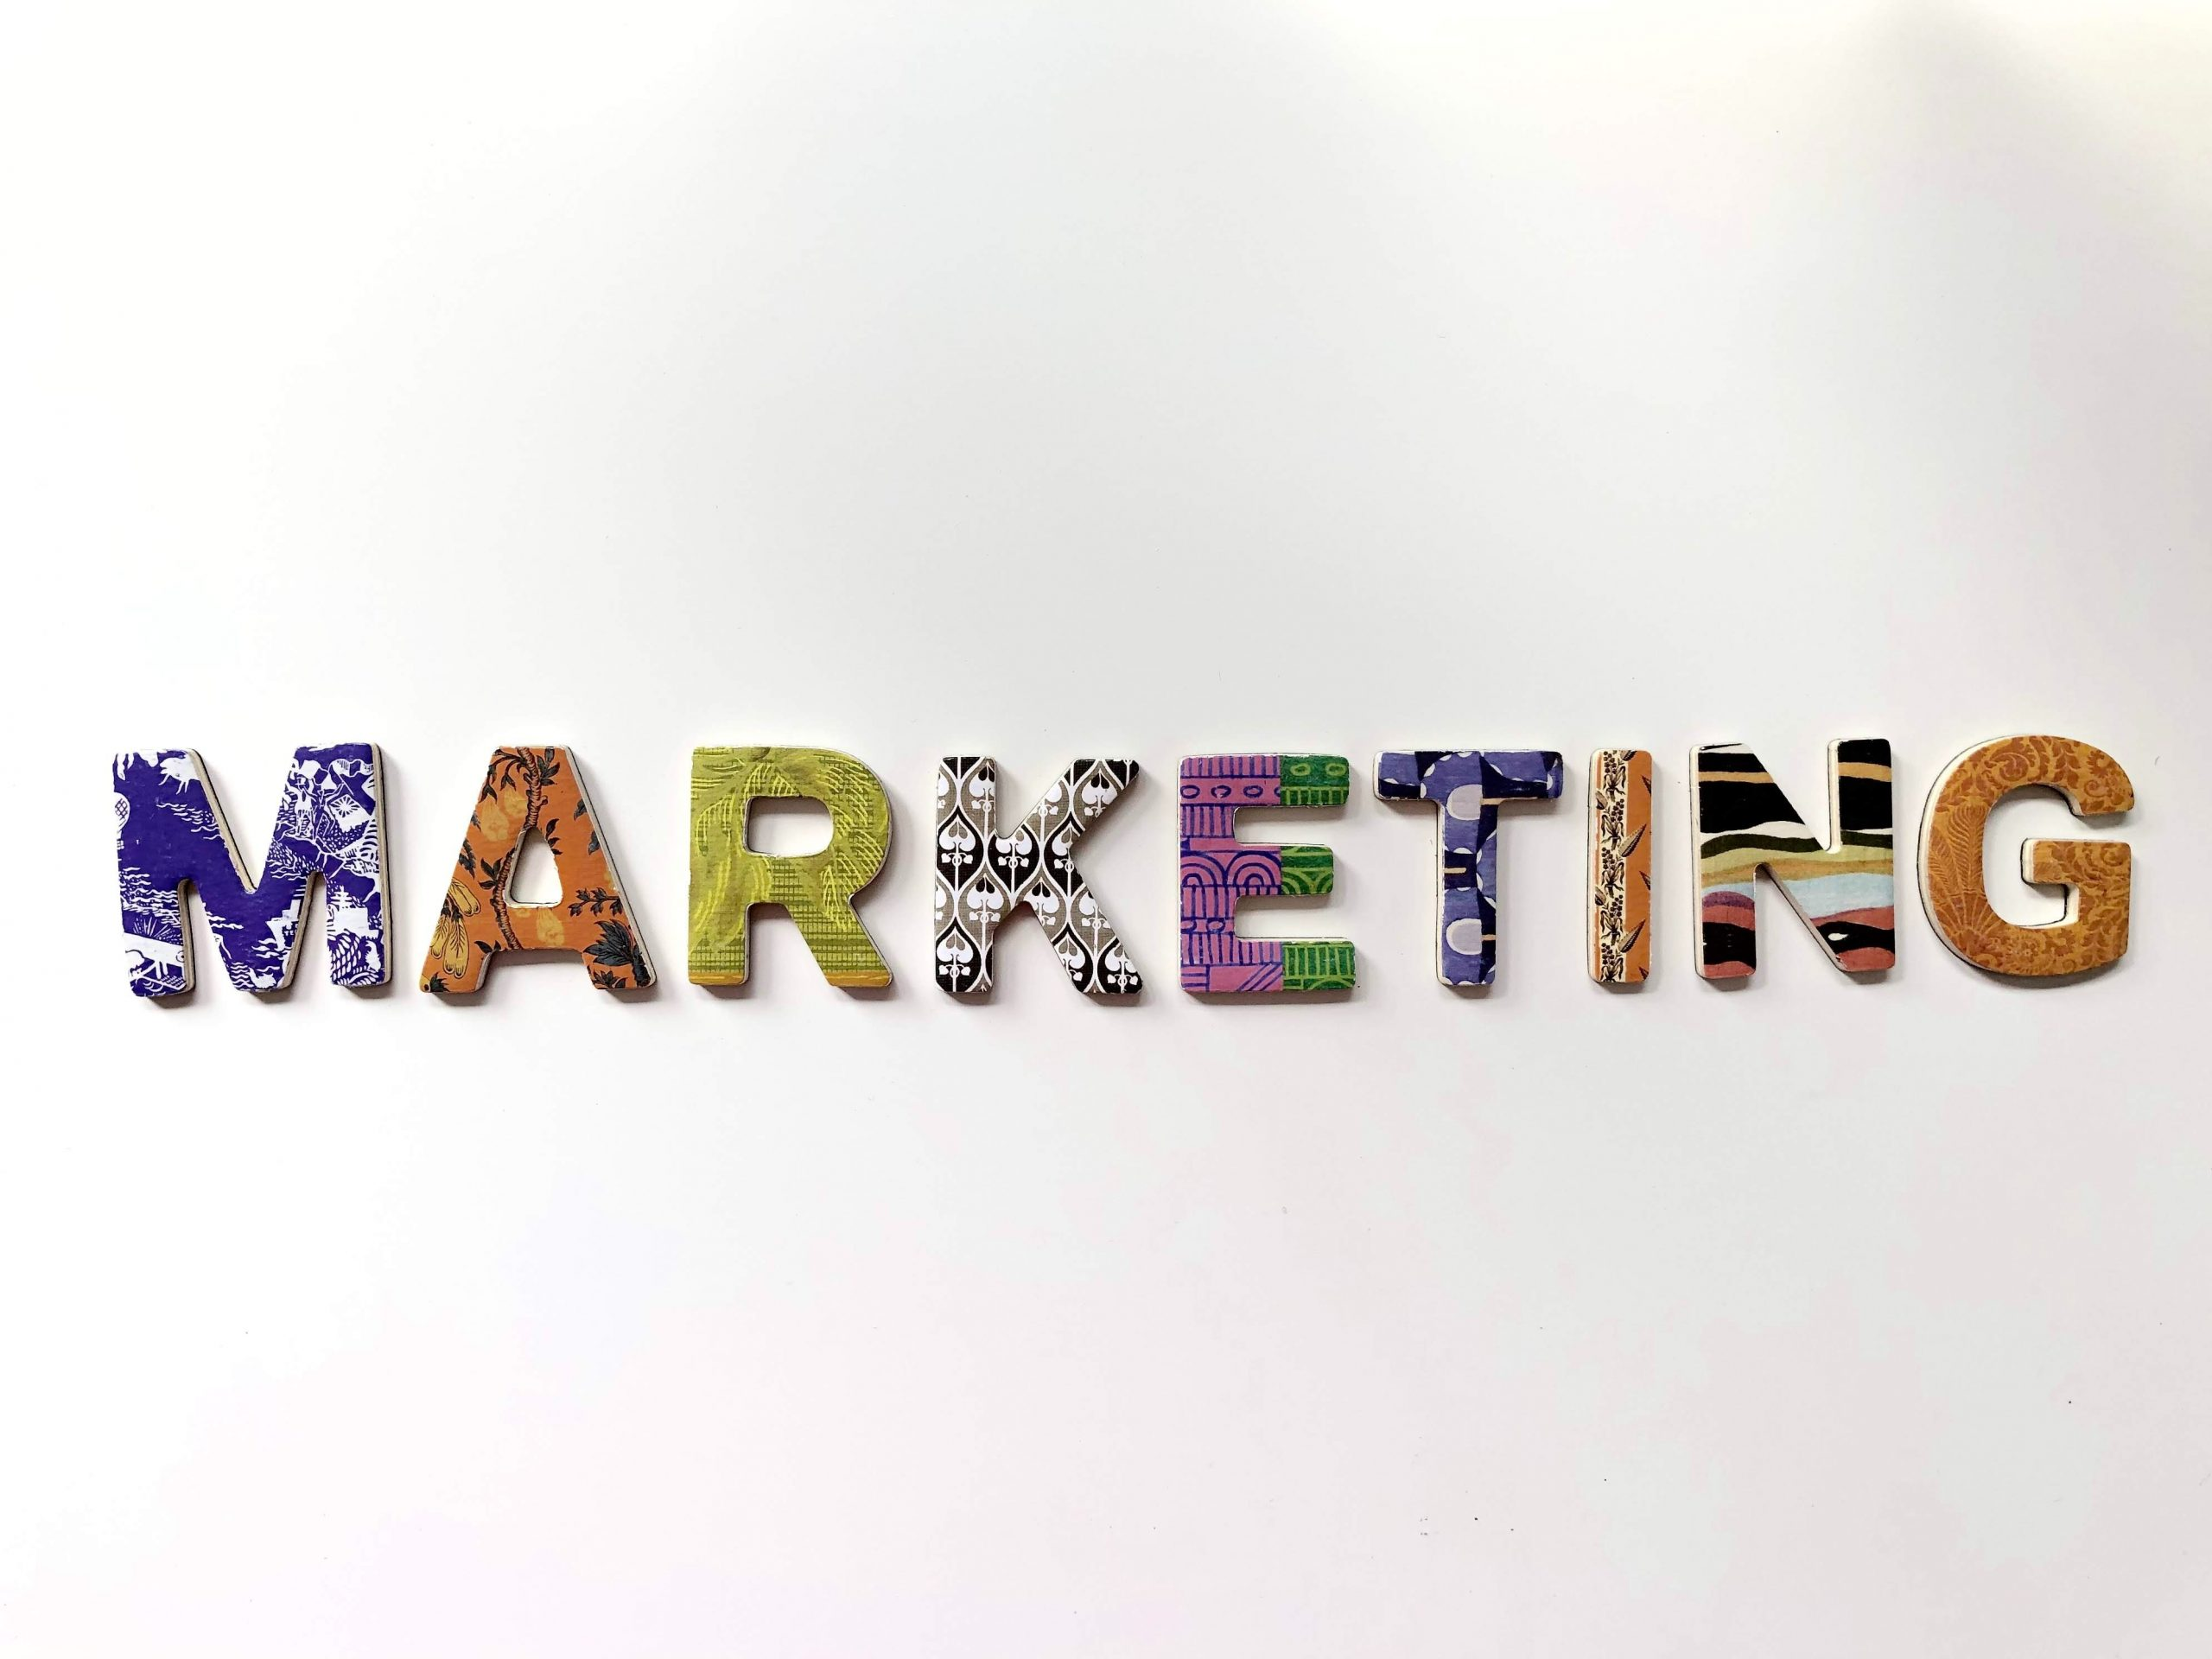 Basic Search Engine Marketing Tips for SEO and PPC